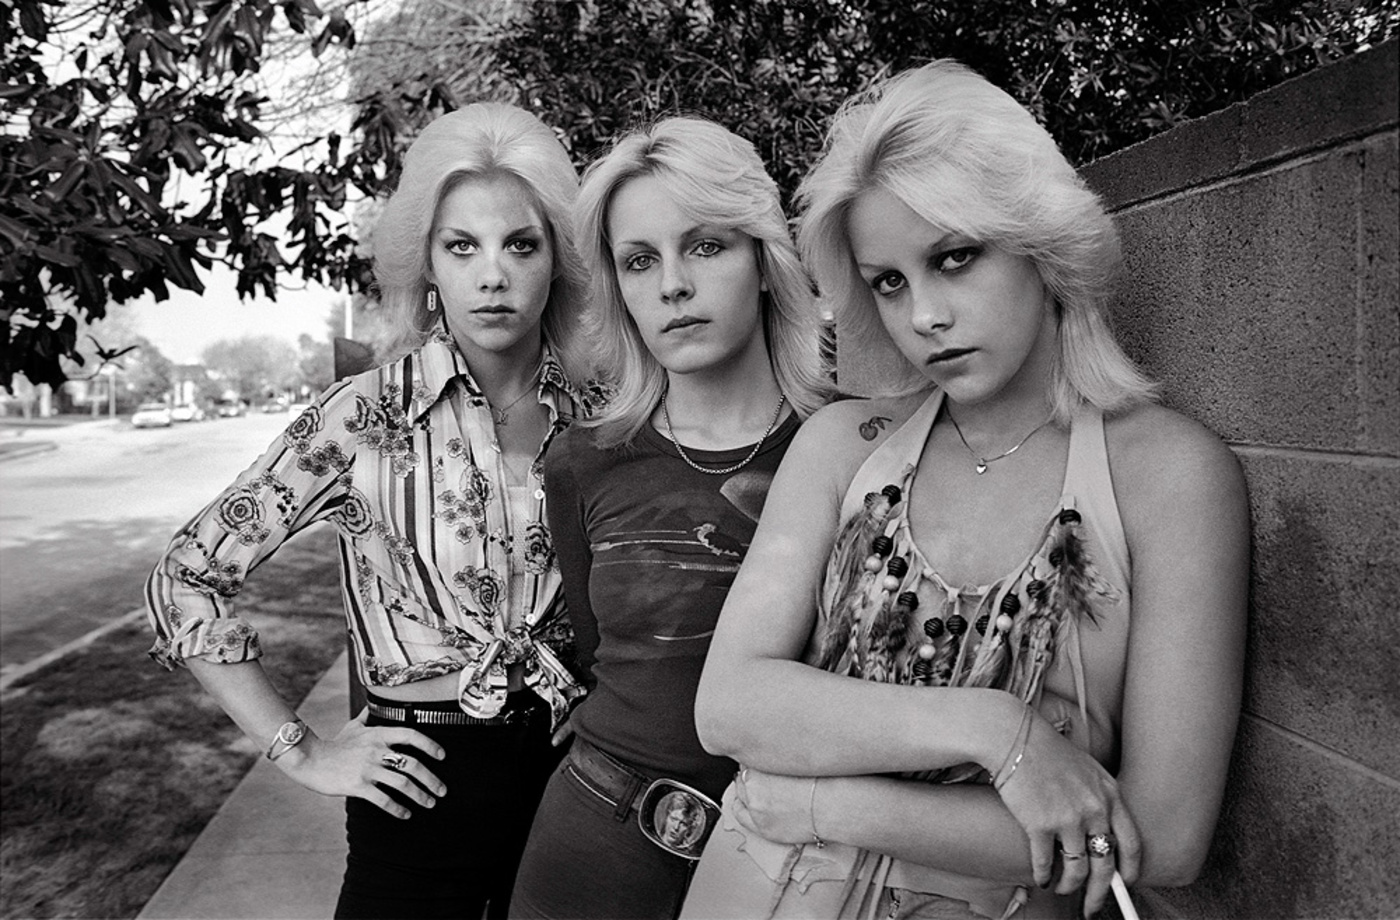 The Valley Chicks, 1978 - I drove out to the San Fernando Valley to make some photos of Cherie Currie for The Runaways record company. When I got to her home, there was her twin sister Marie and Vicki Razor Blade from the band Venus And The Razor Blades. History was made!